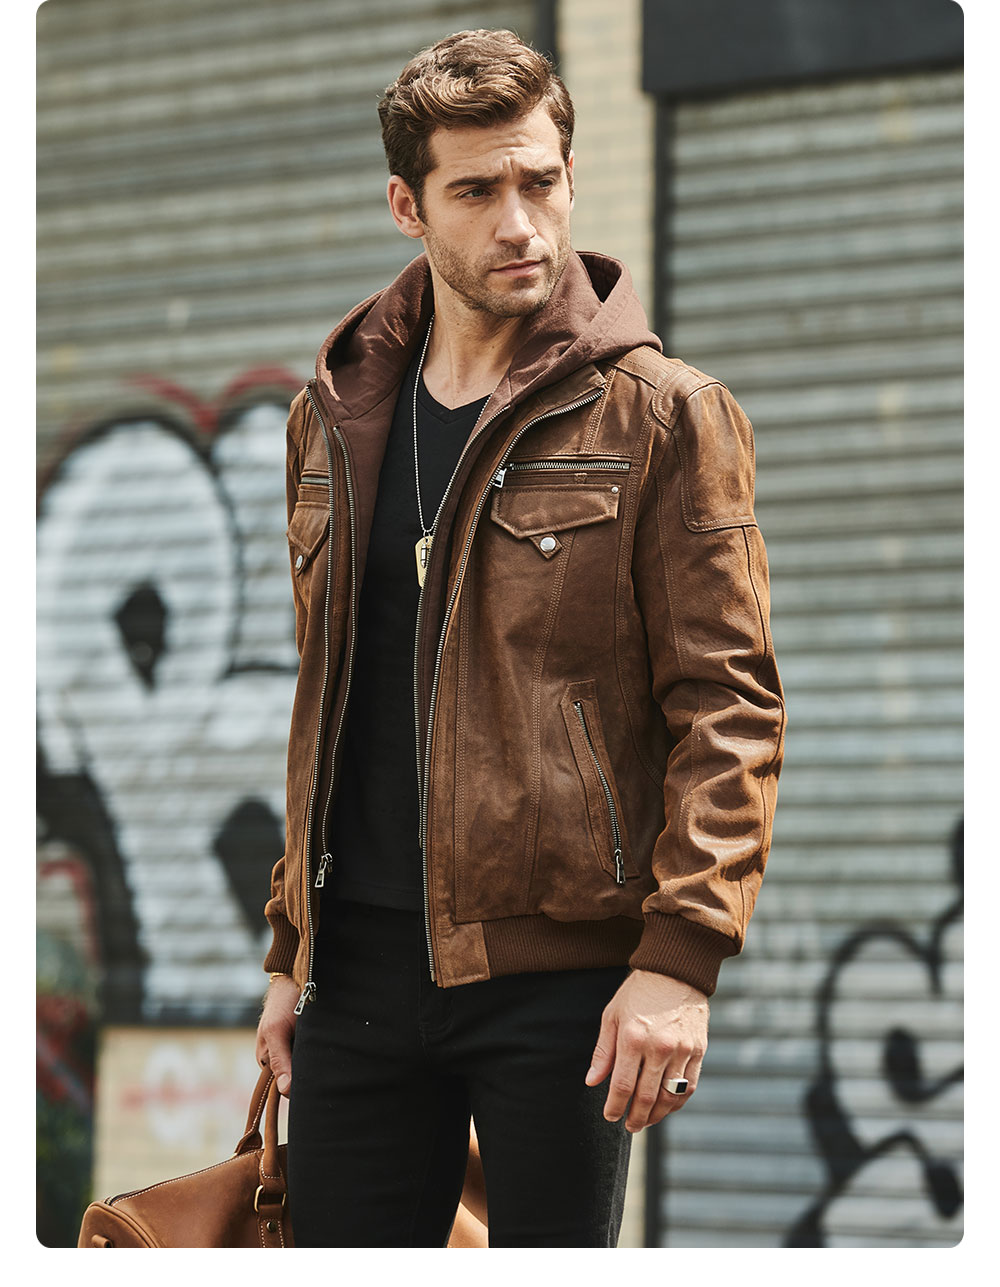 H99bf24b0cb3c49898a5fd896b3505bf3y FLAVOR New Men's Real Leather Jacket with Removable Hood Brown Jacket Genuine Leather Warm Coat For Men